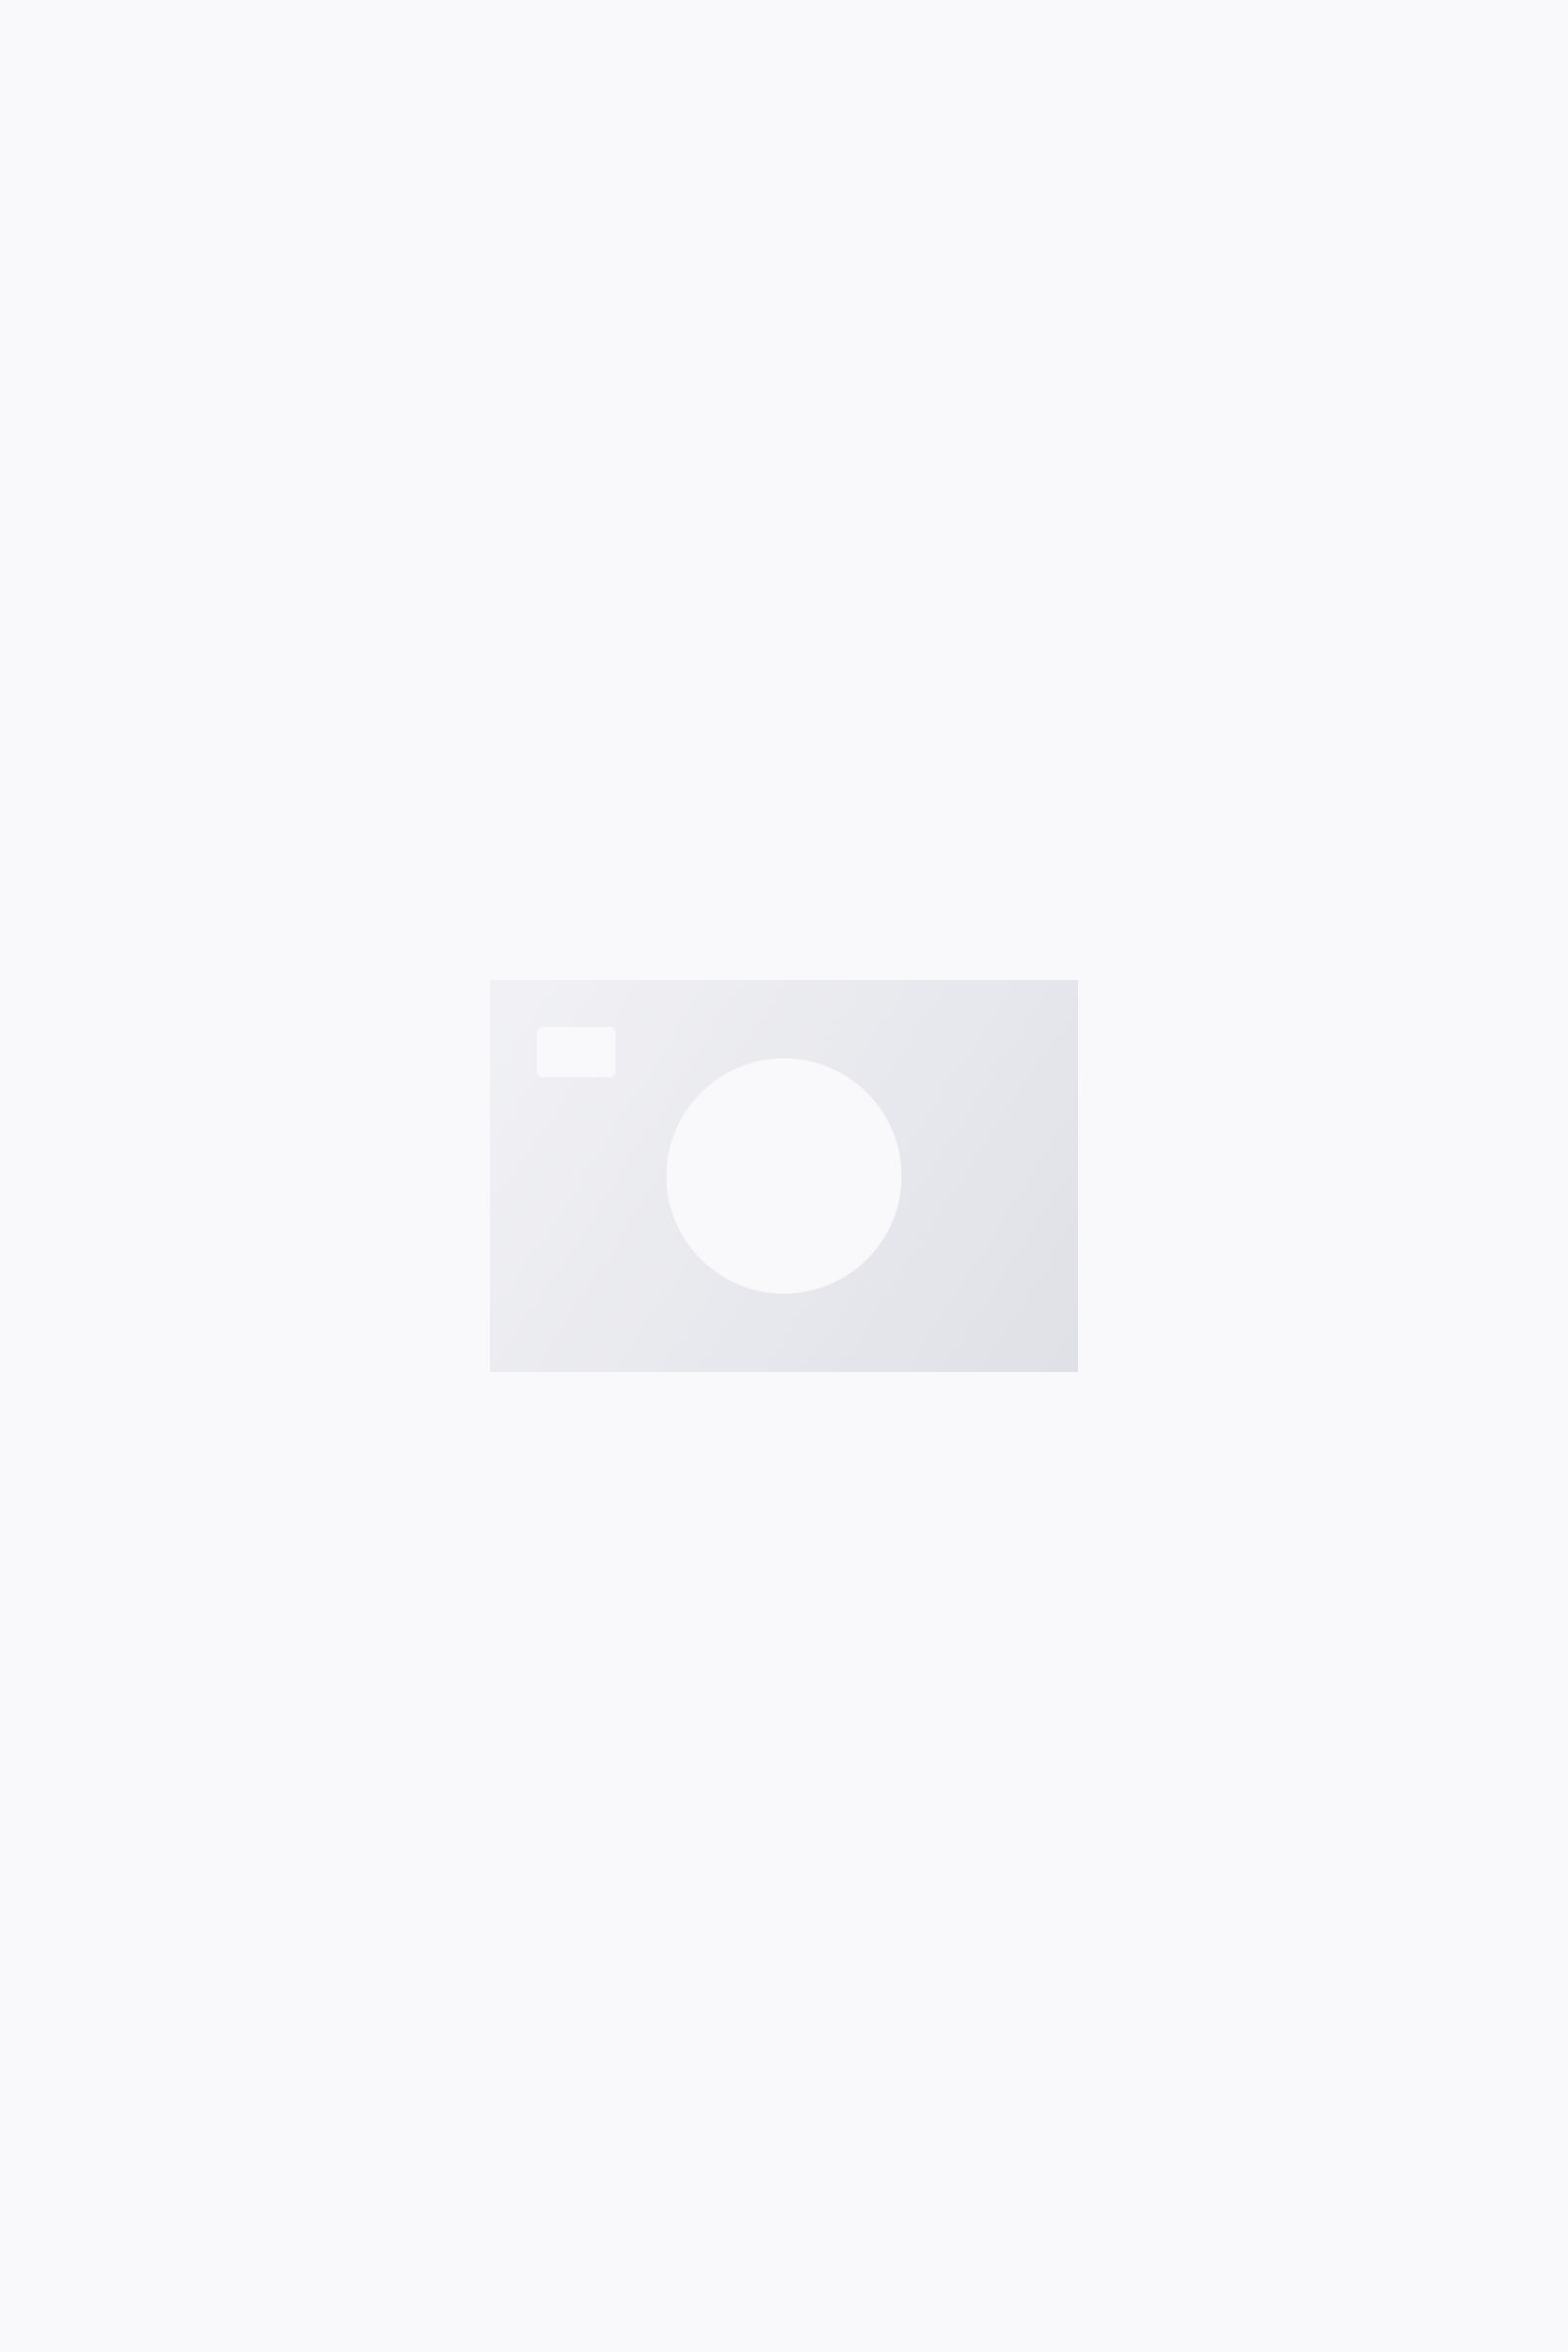 COS COTTON WIDE-LEG CORDUROY TROUSERS,brown